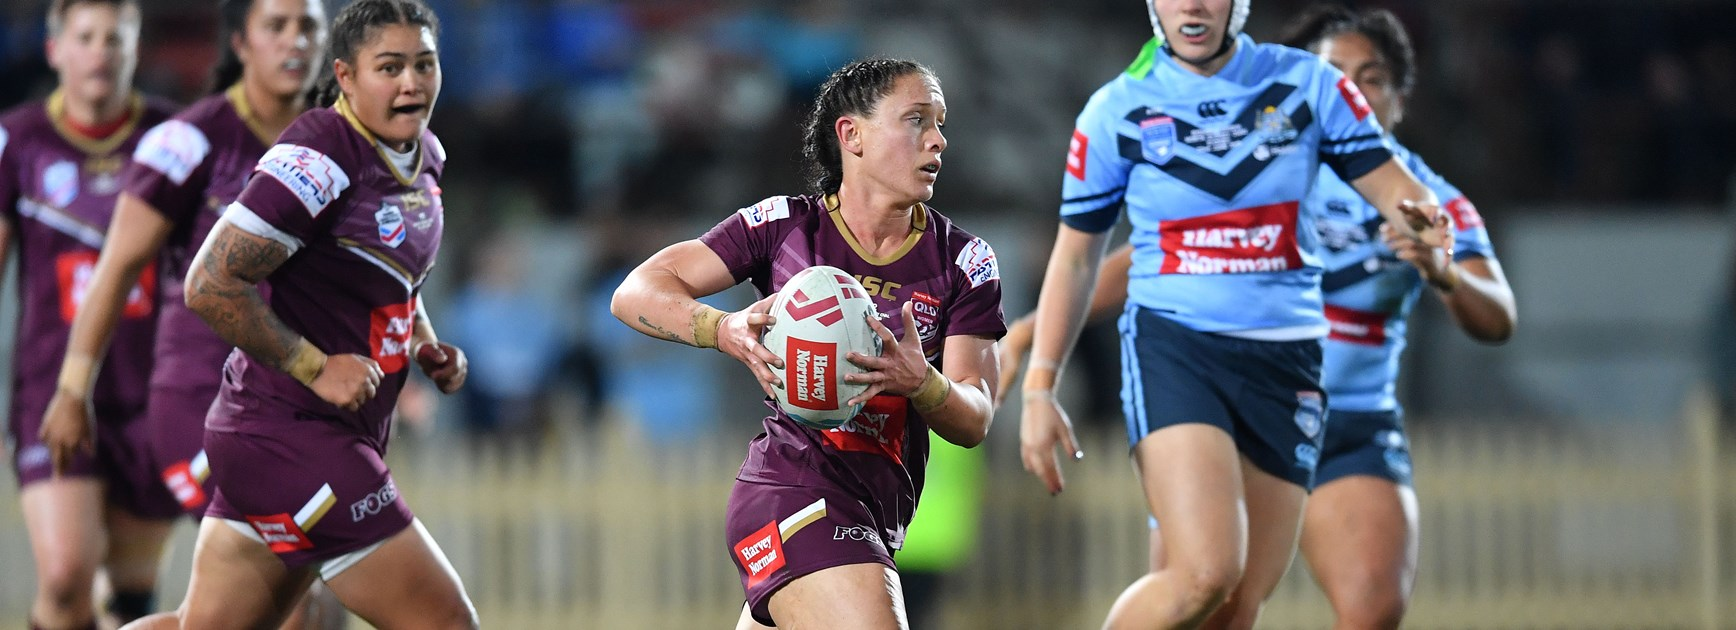 Queensland talent named for Women's All Stars clash